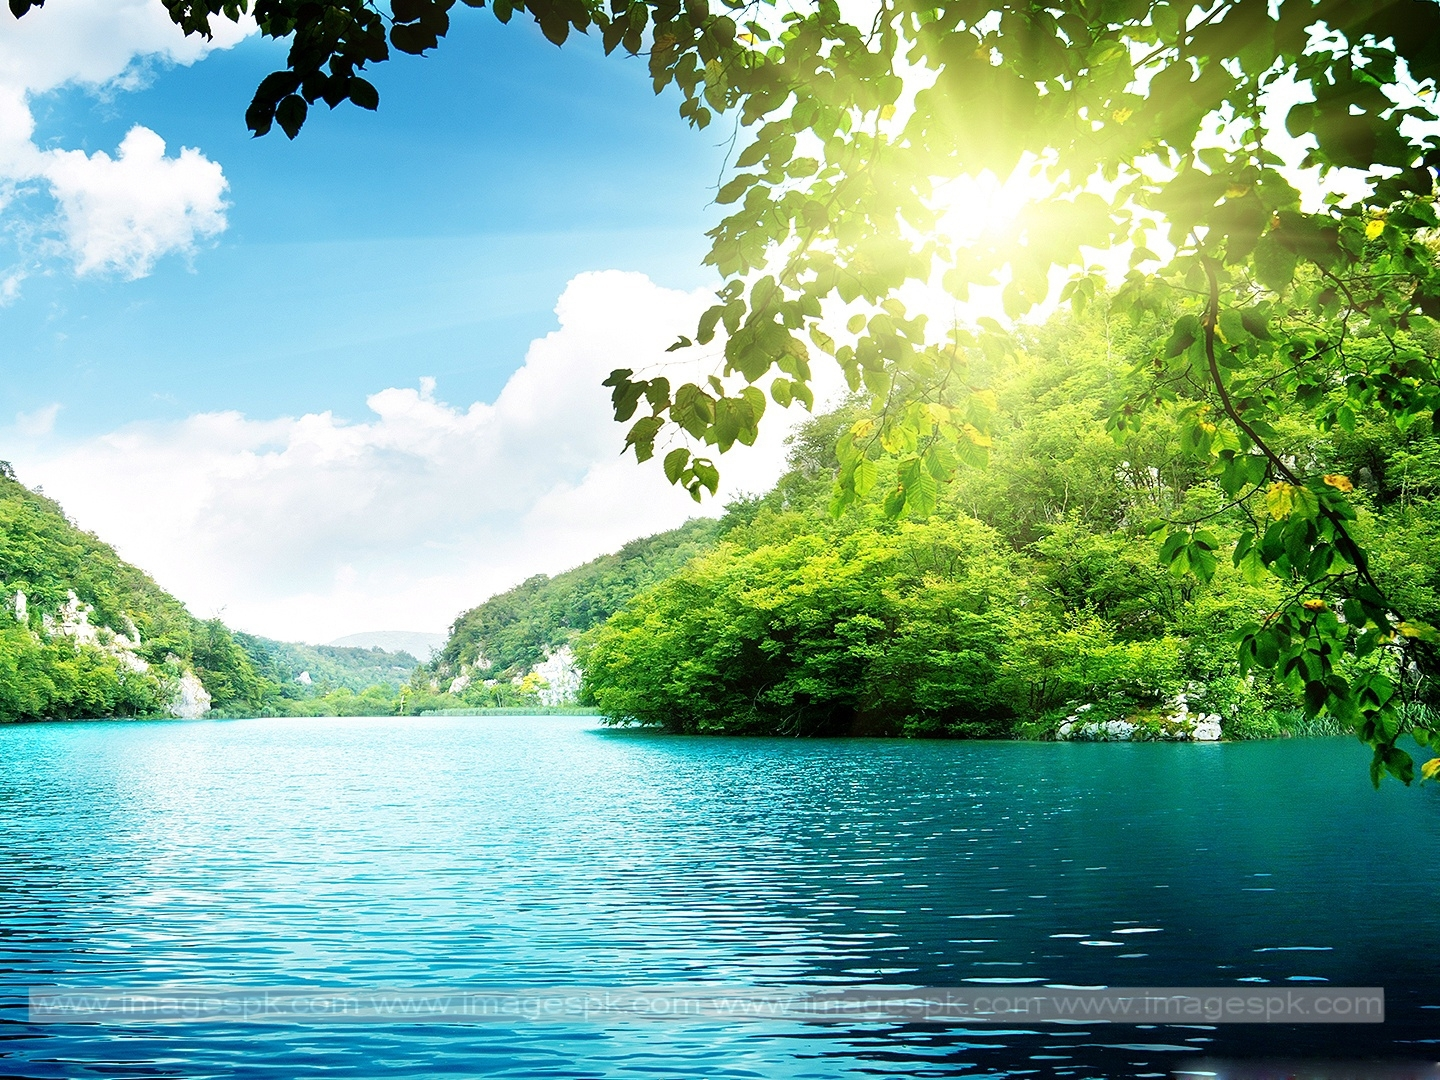 Peaceful Lake Wallpaper   Imagespkcom 1440x1080